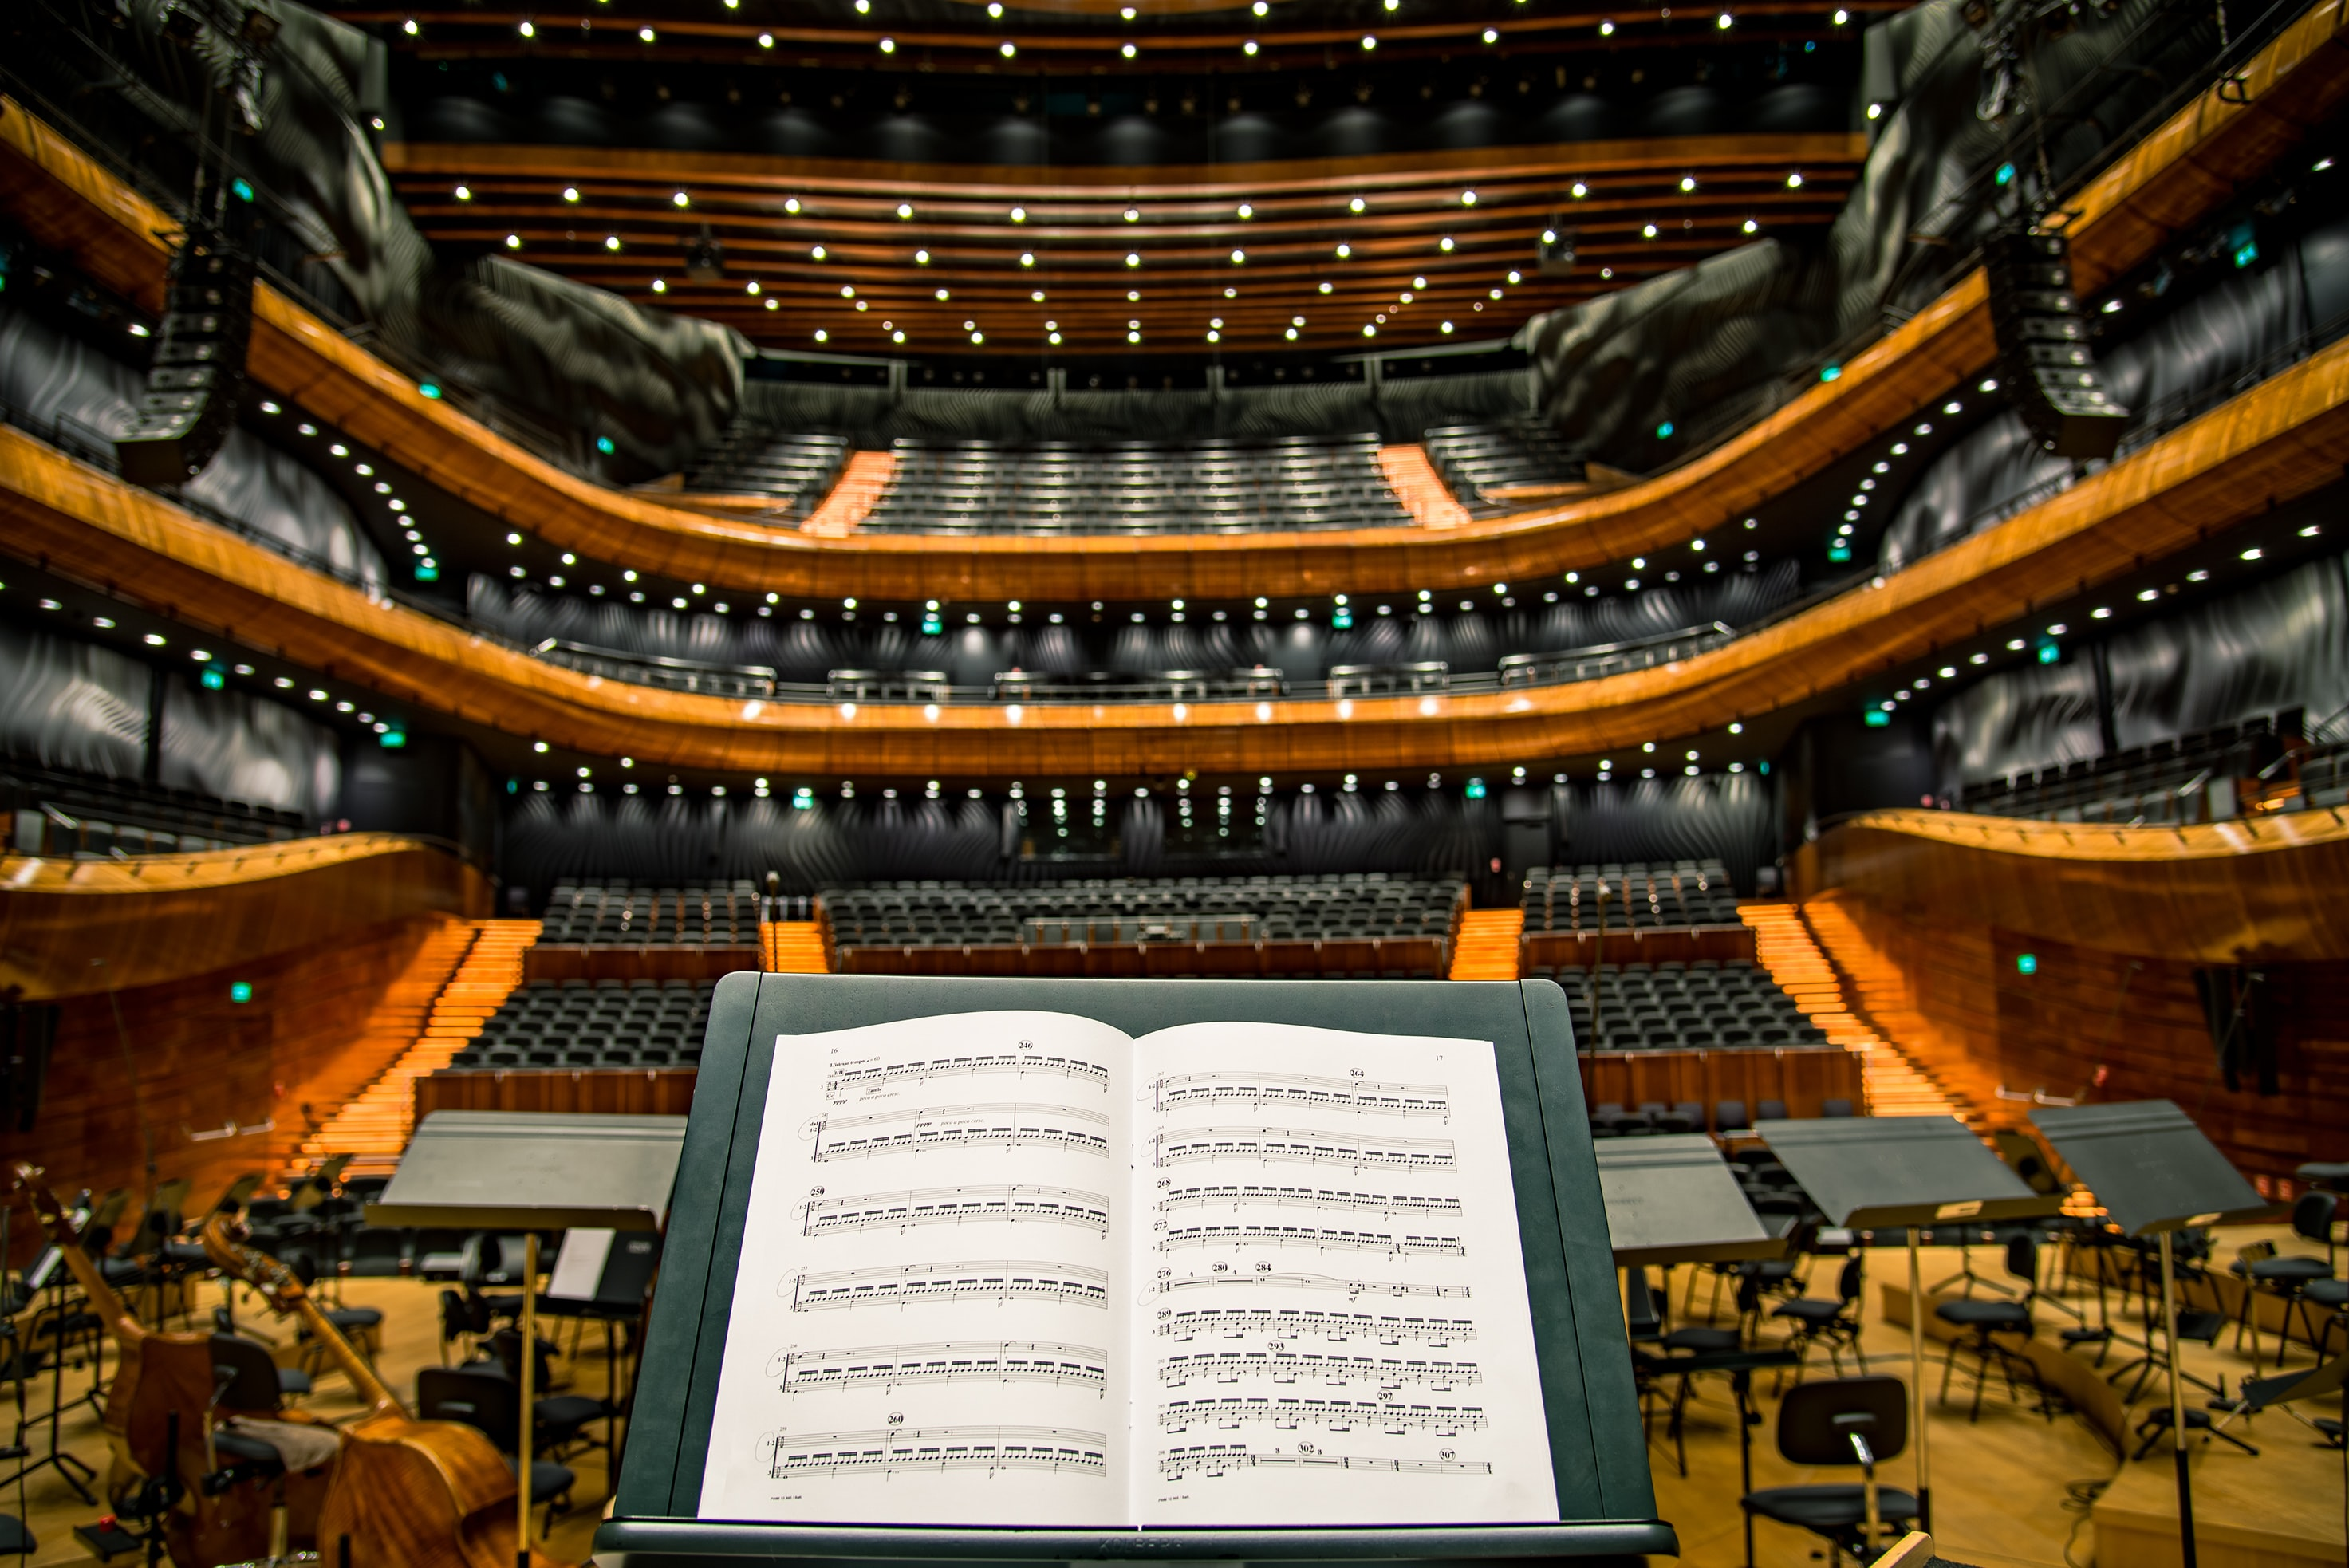 A view from over a conductor's stand on an elegant concert hall in Katowice